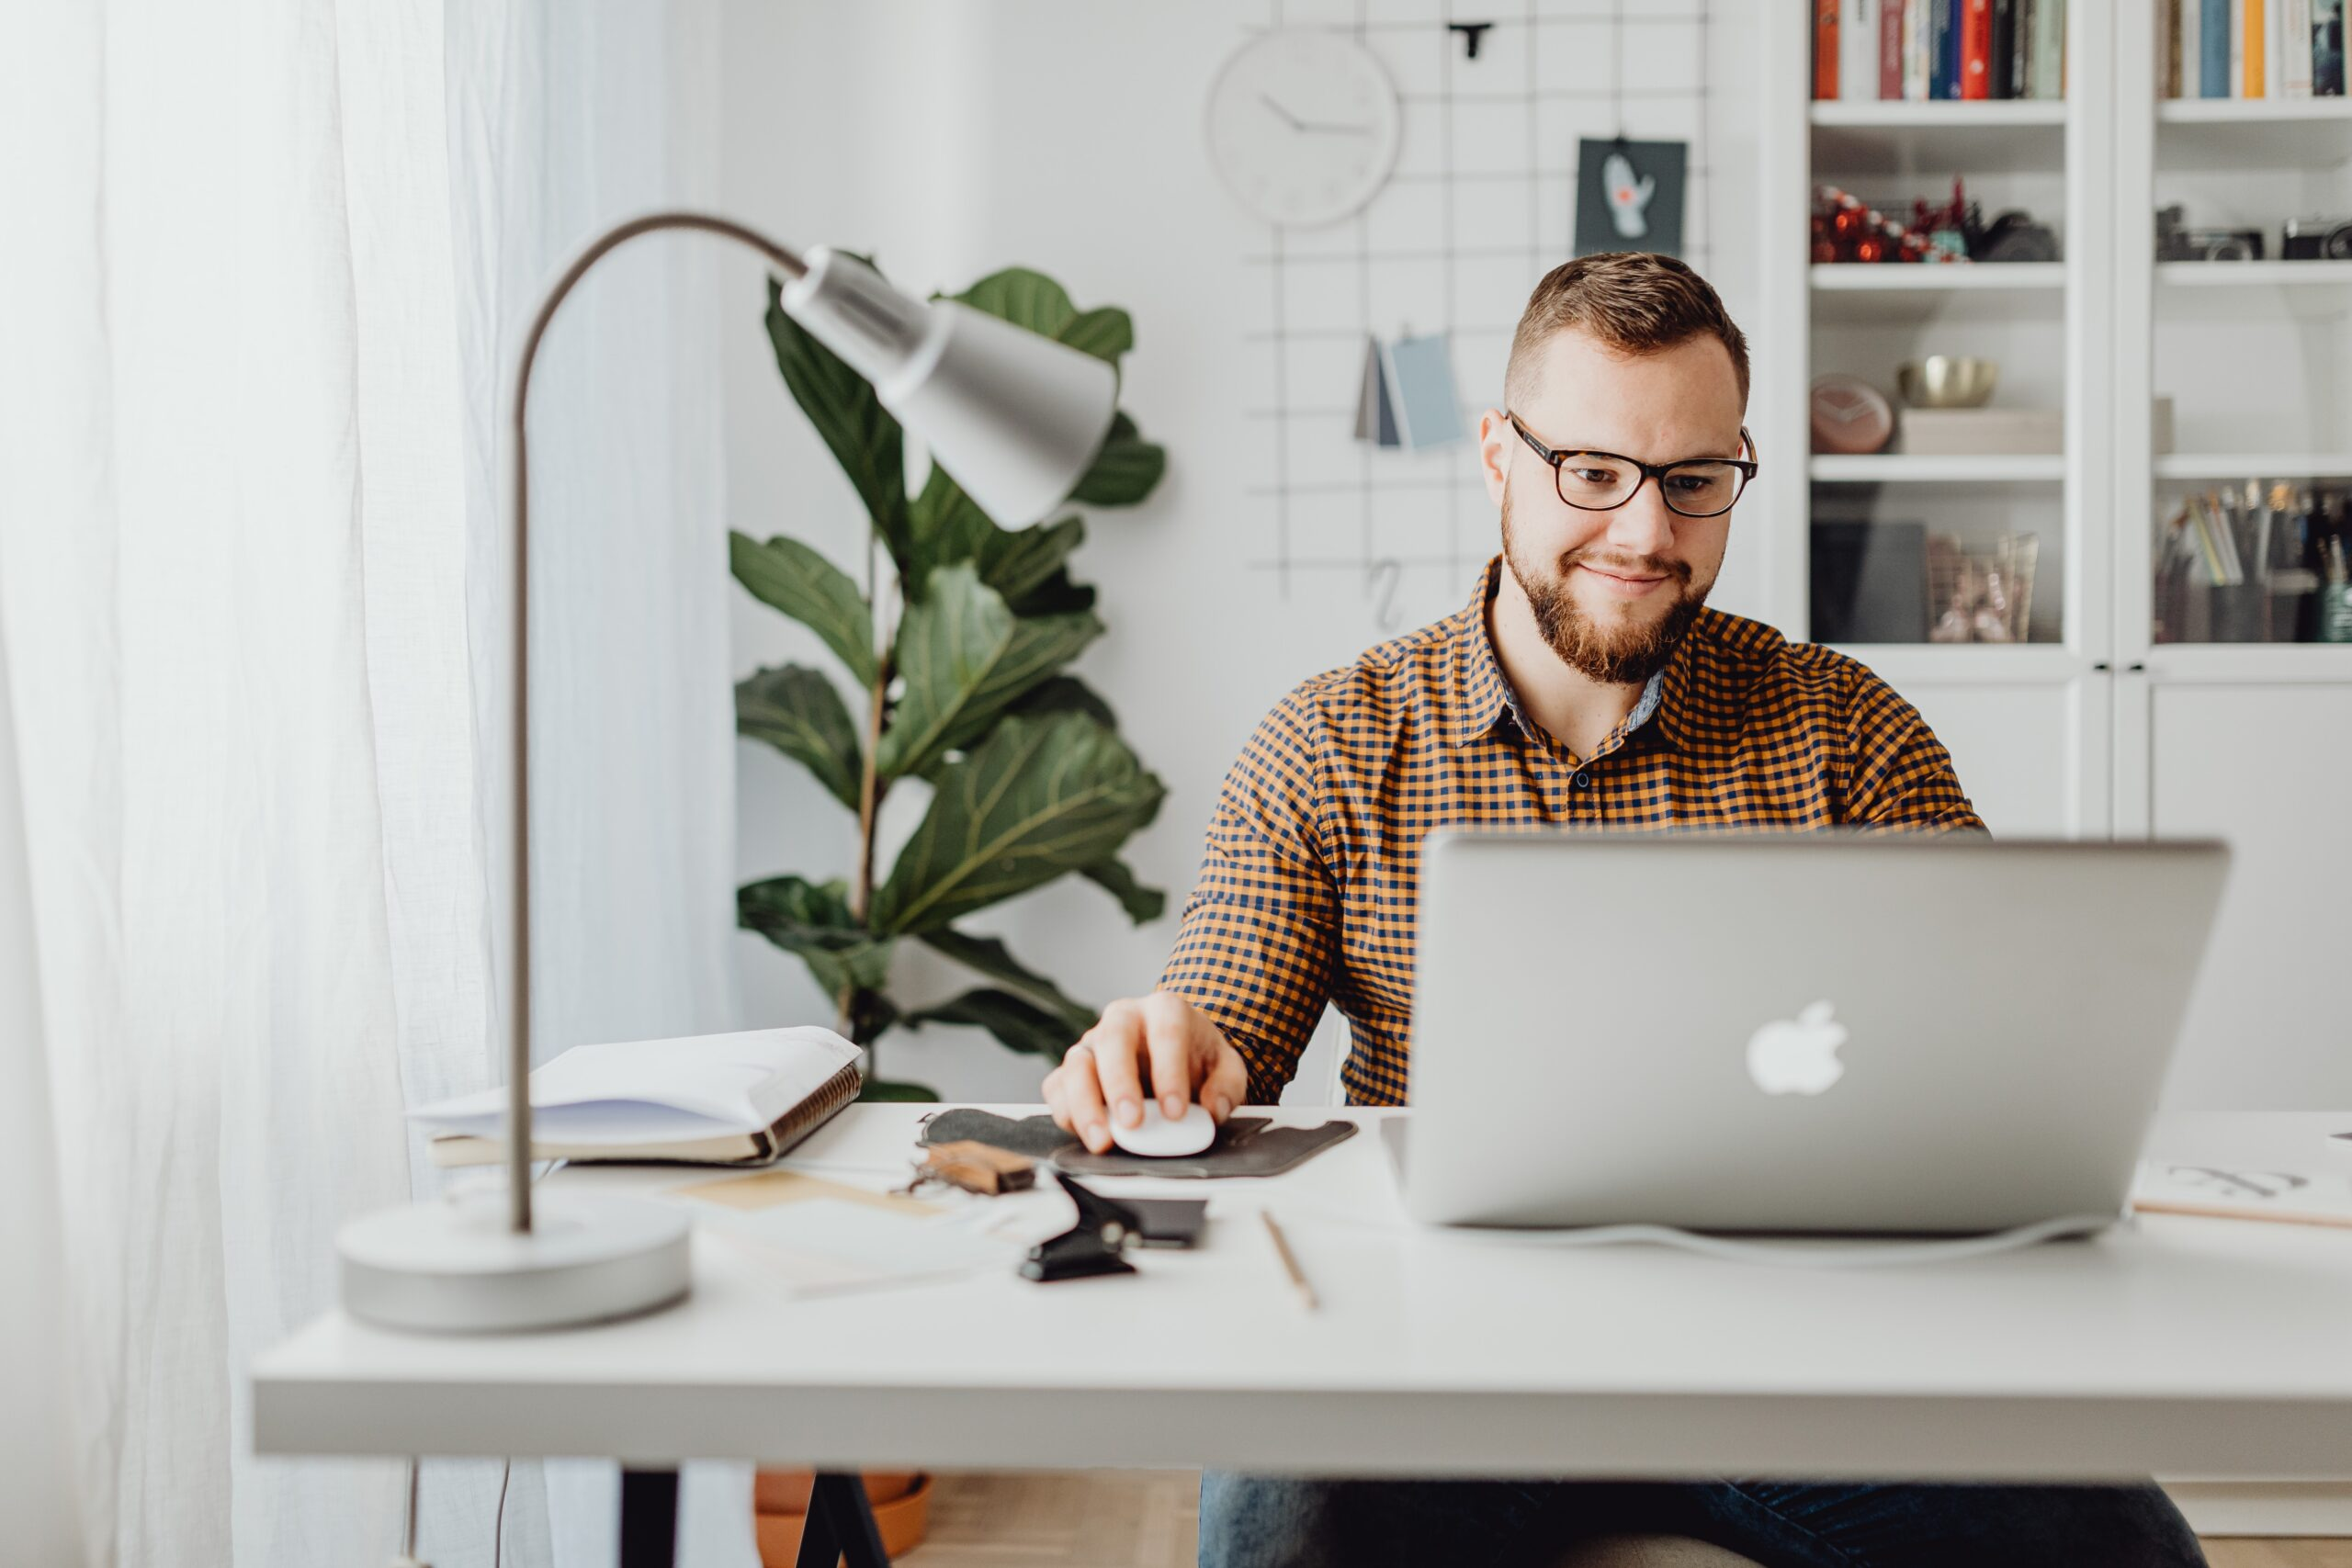 man with glasses sitting at desk and reading laptop computer screen